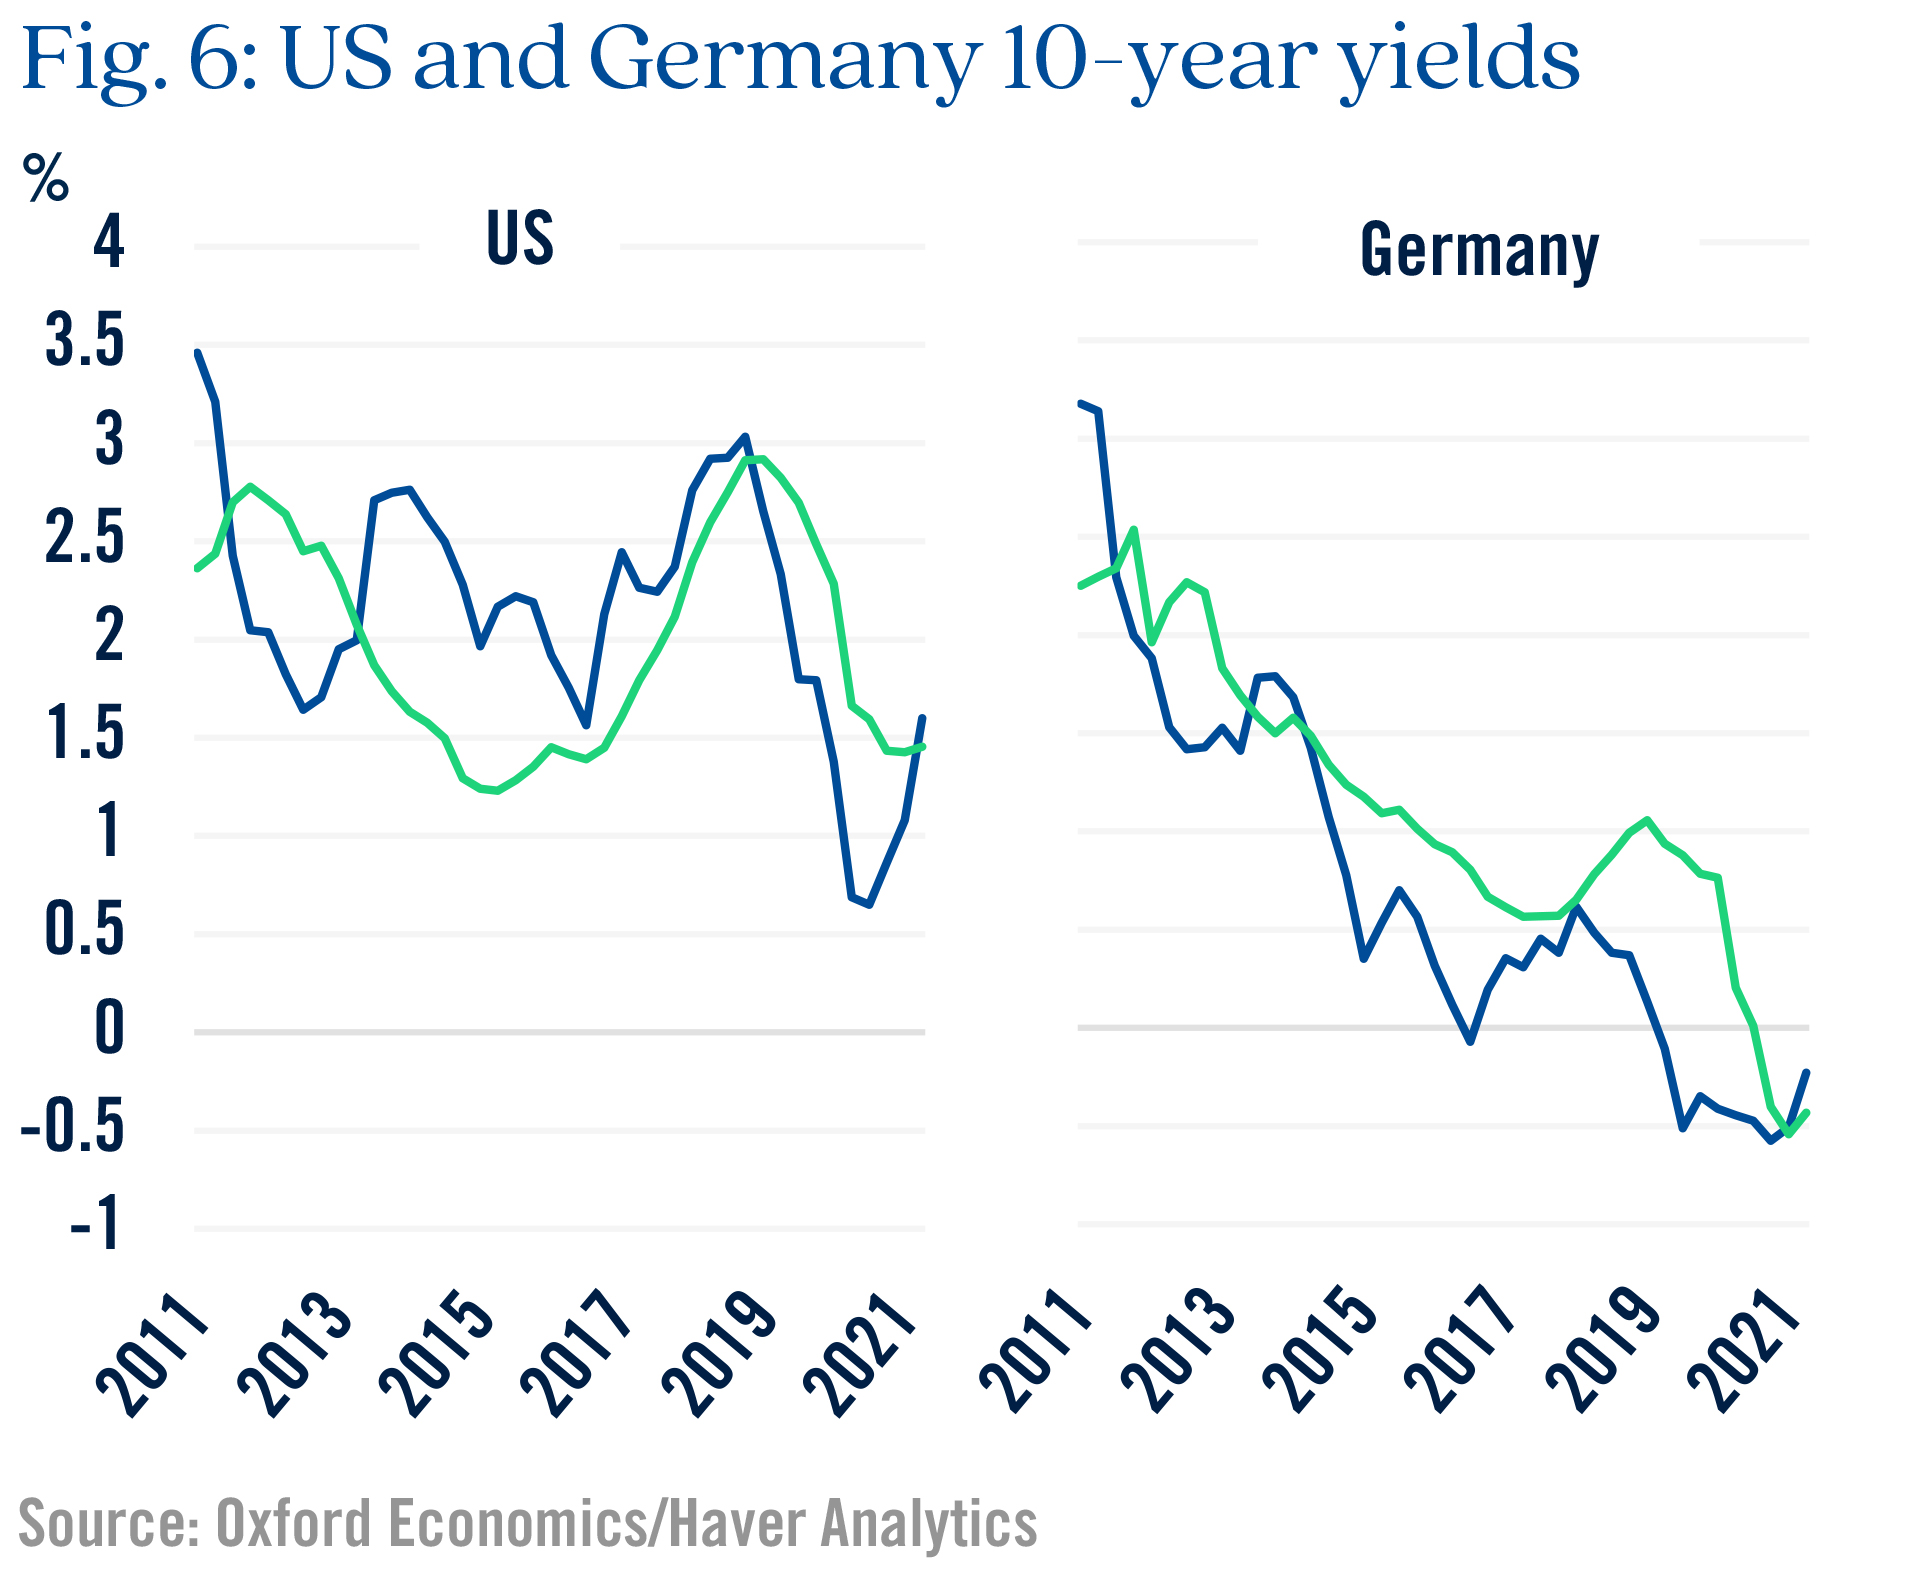 Figure 6 US and Germany 10-year yields